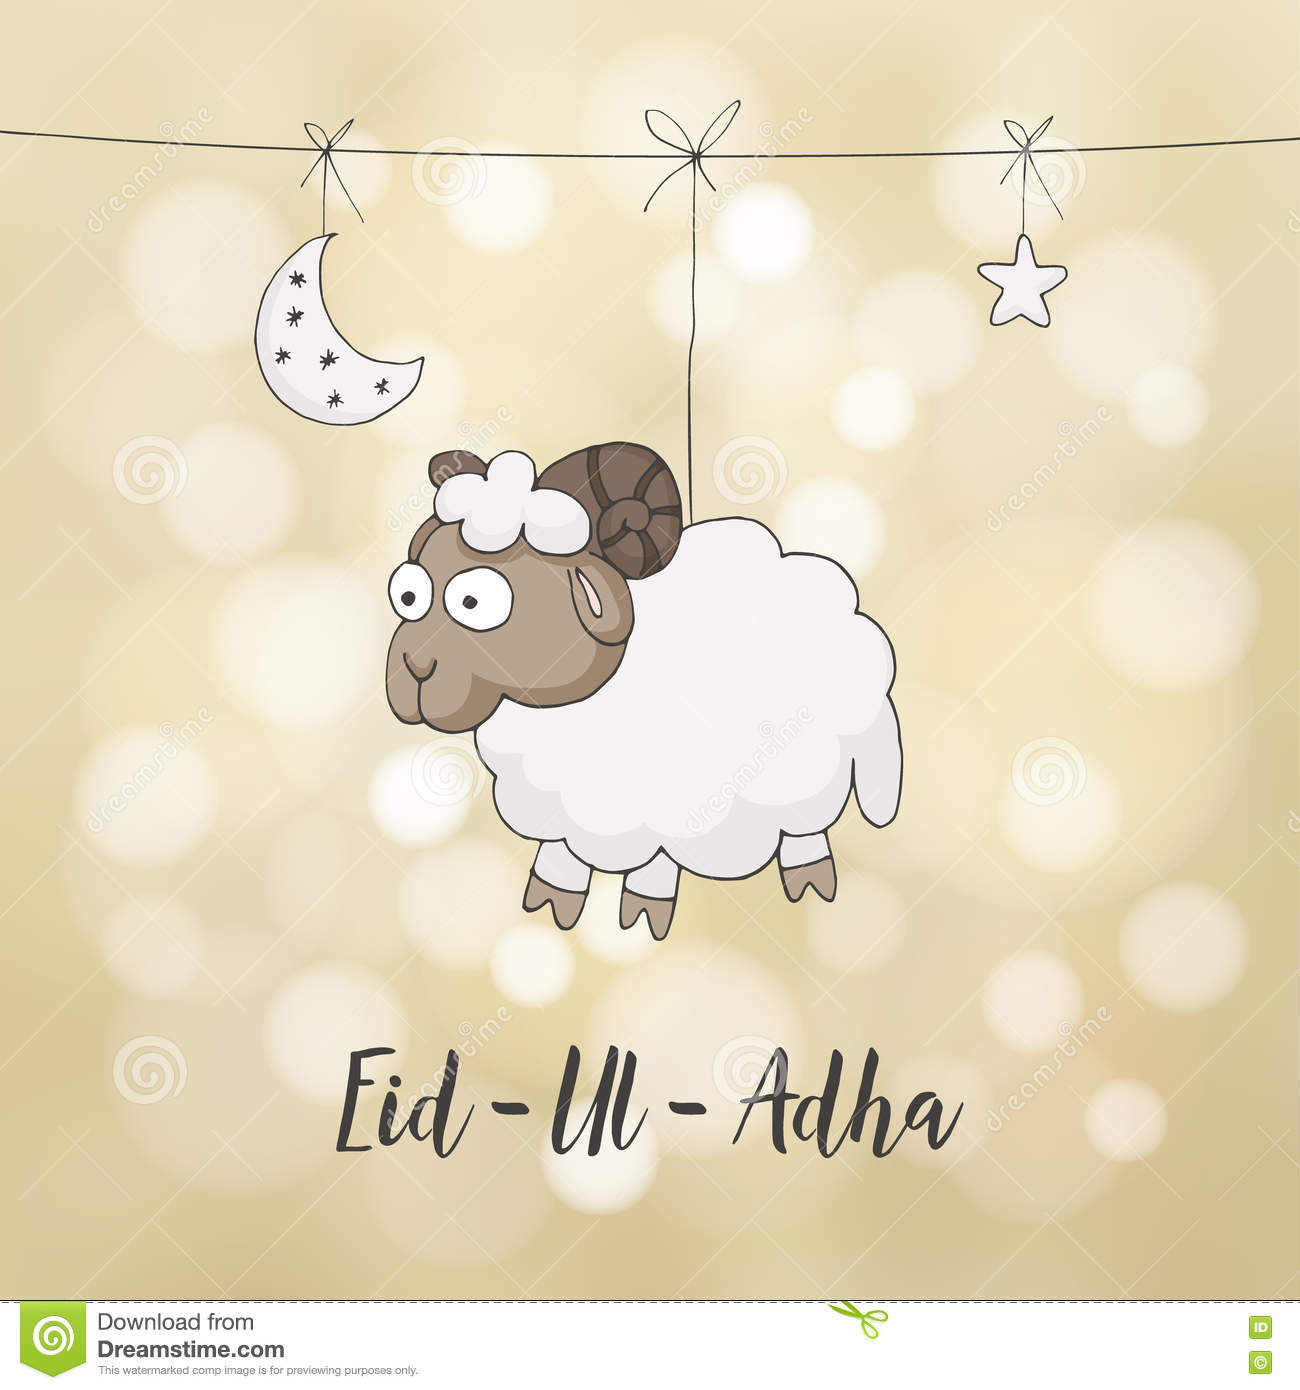 Eid Ul Adha Greeting Card Decoration With Hand Drawn Sheep Moon